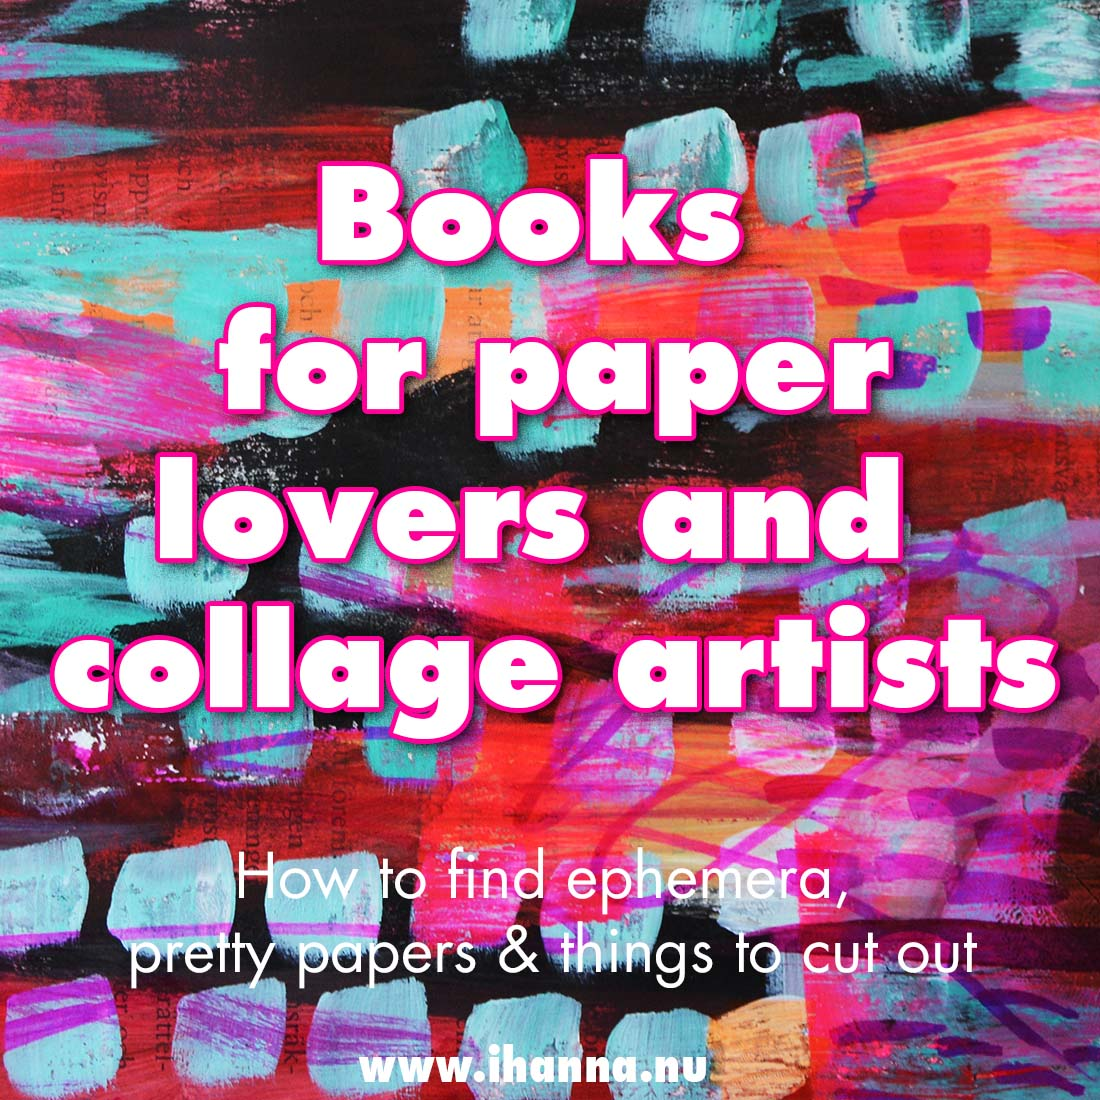 Books for paper lovers & collage artists